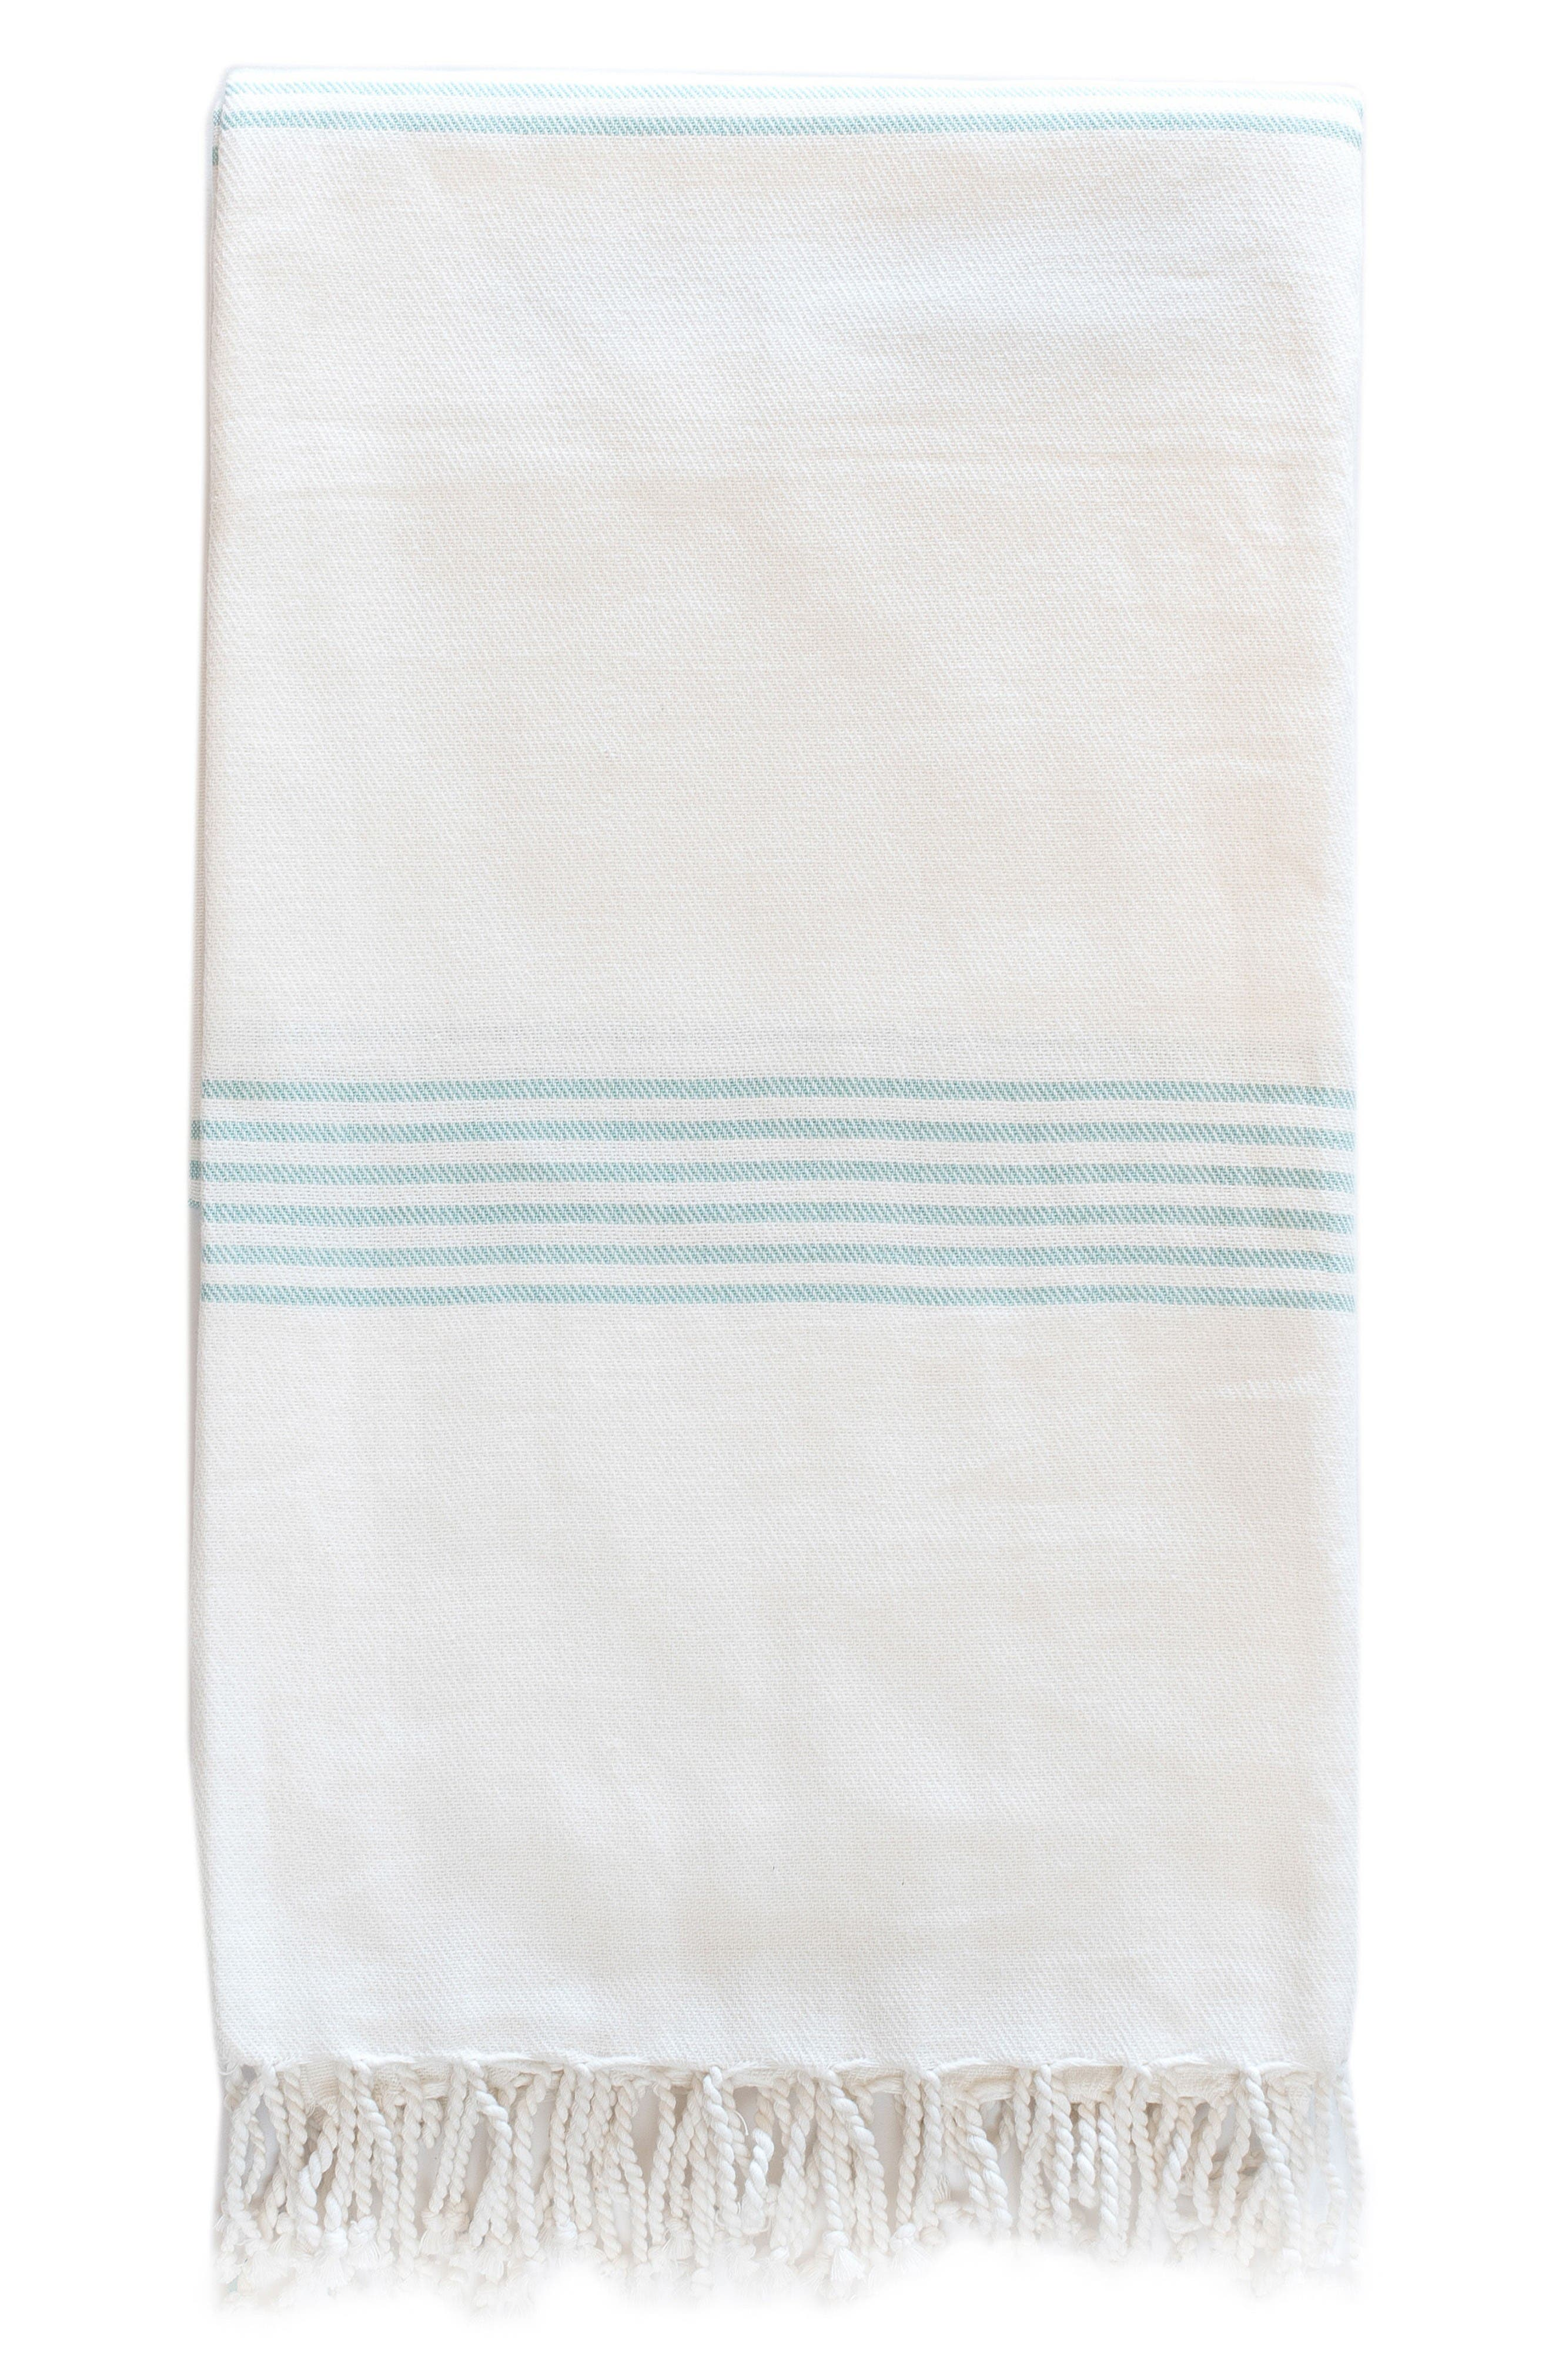 zestt Hudson Throw Blanket